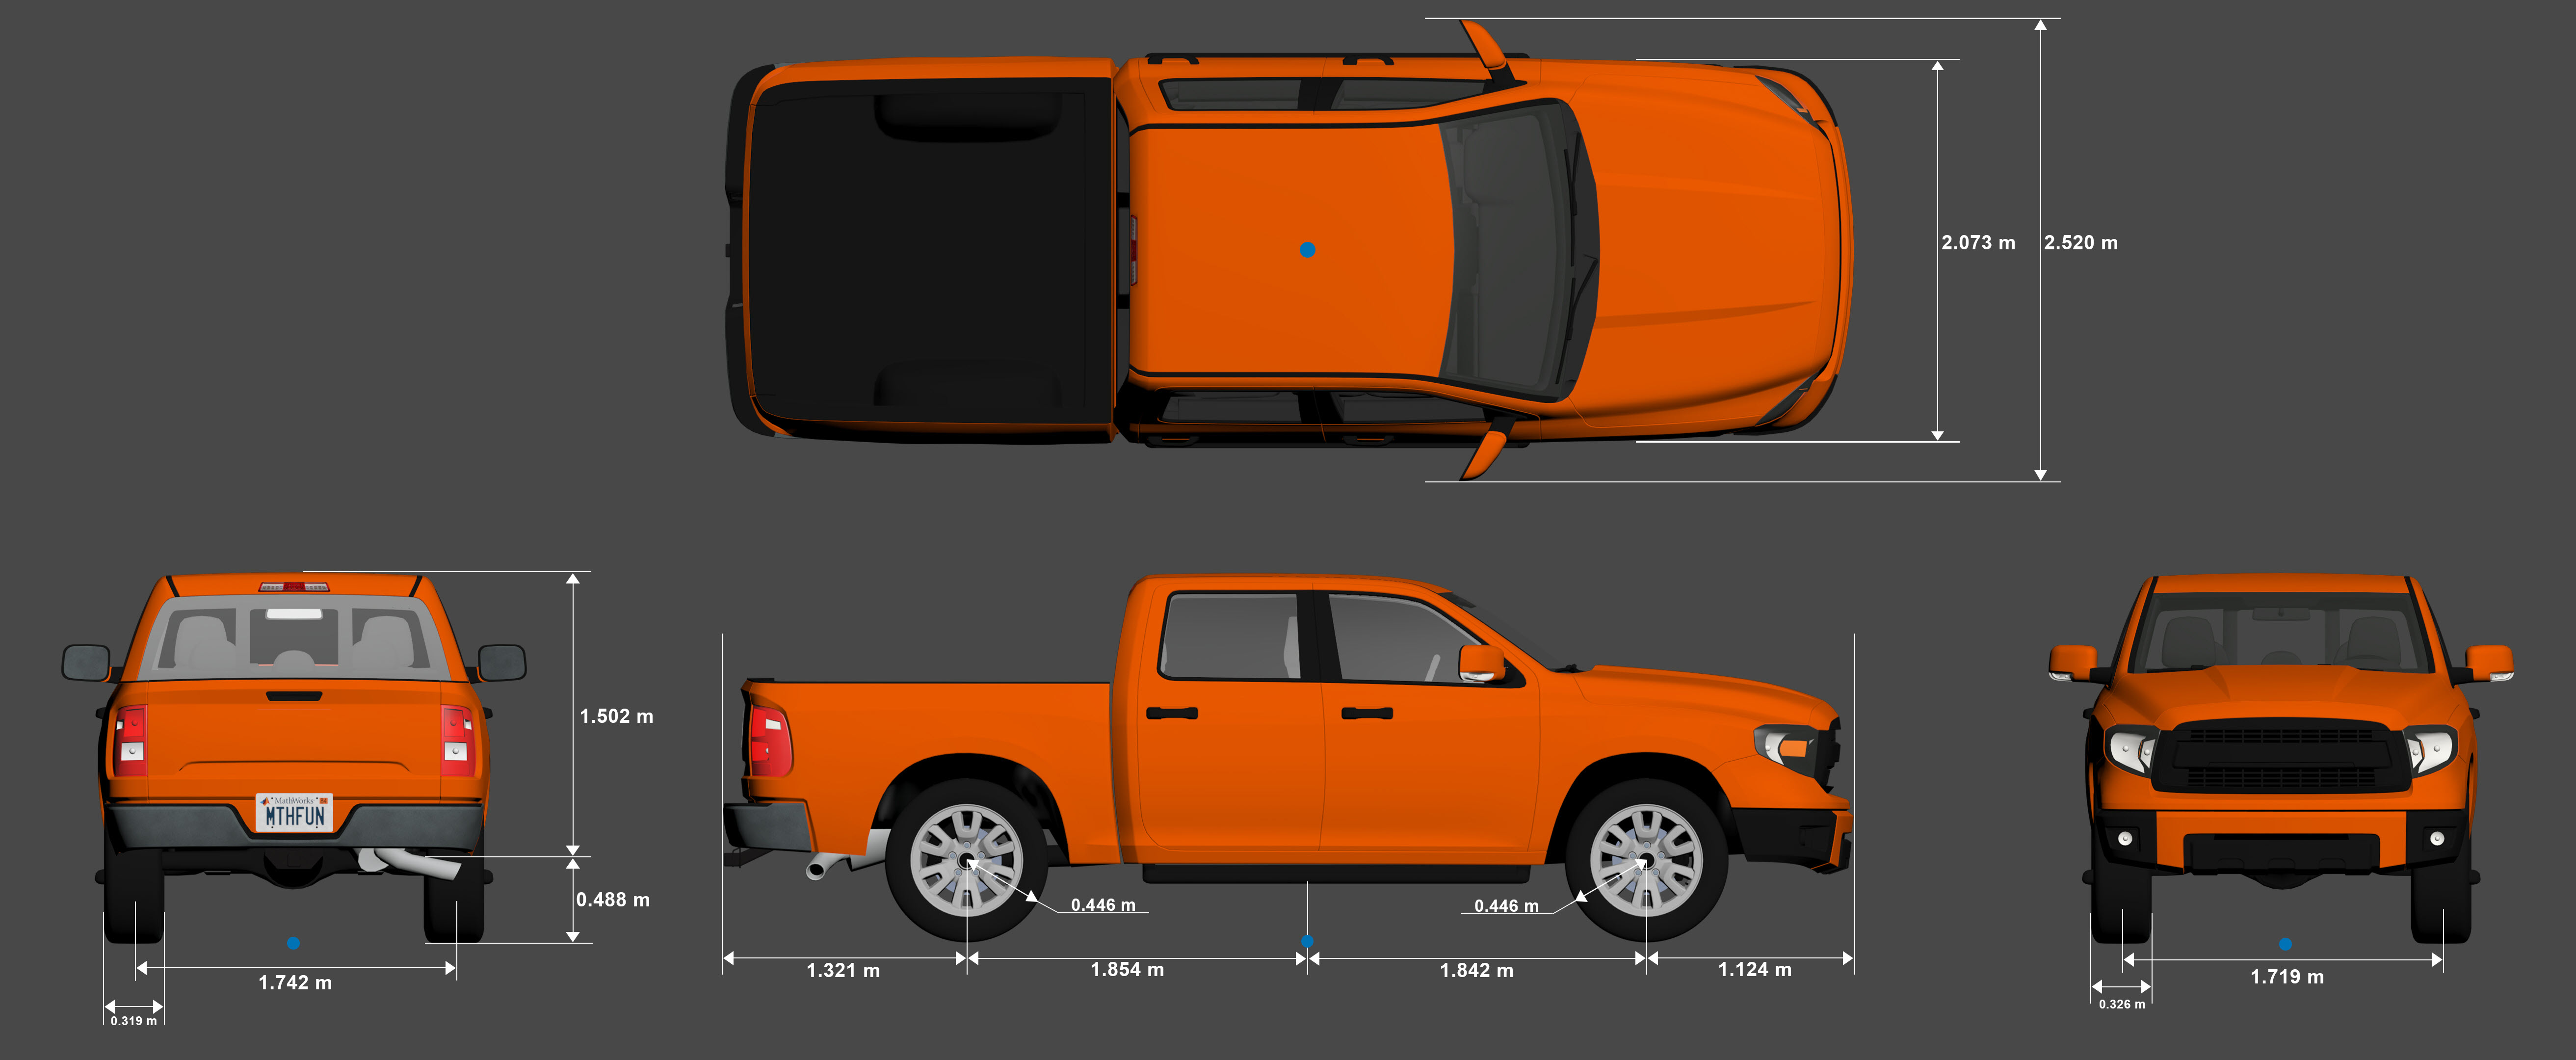 Small Pickup Truck Vehicle Dimensions